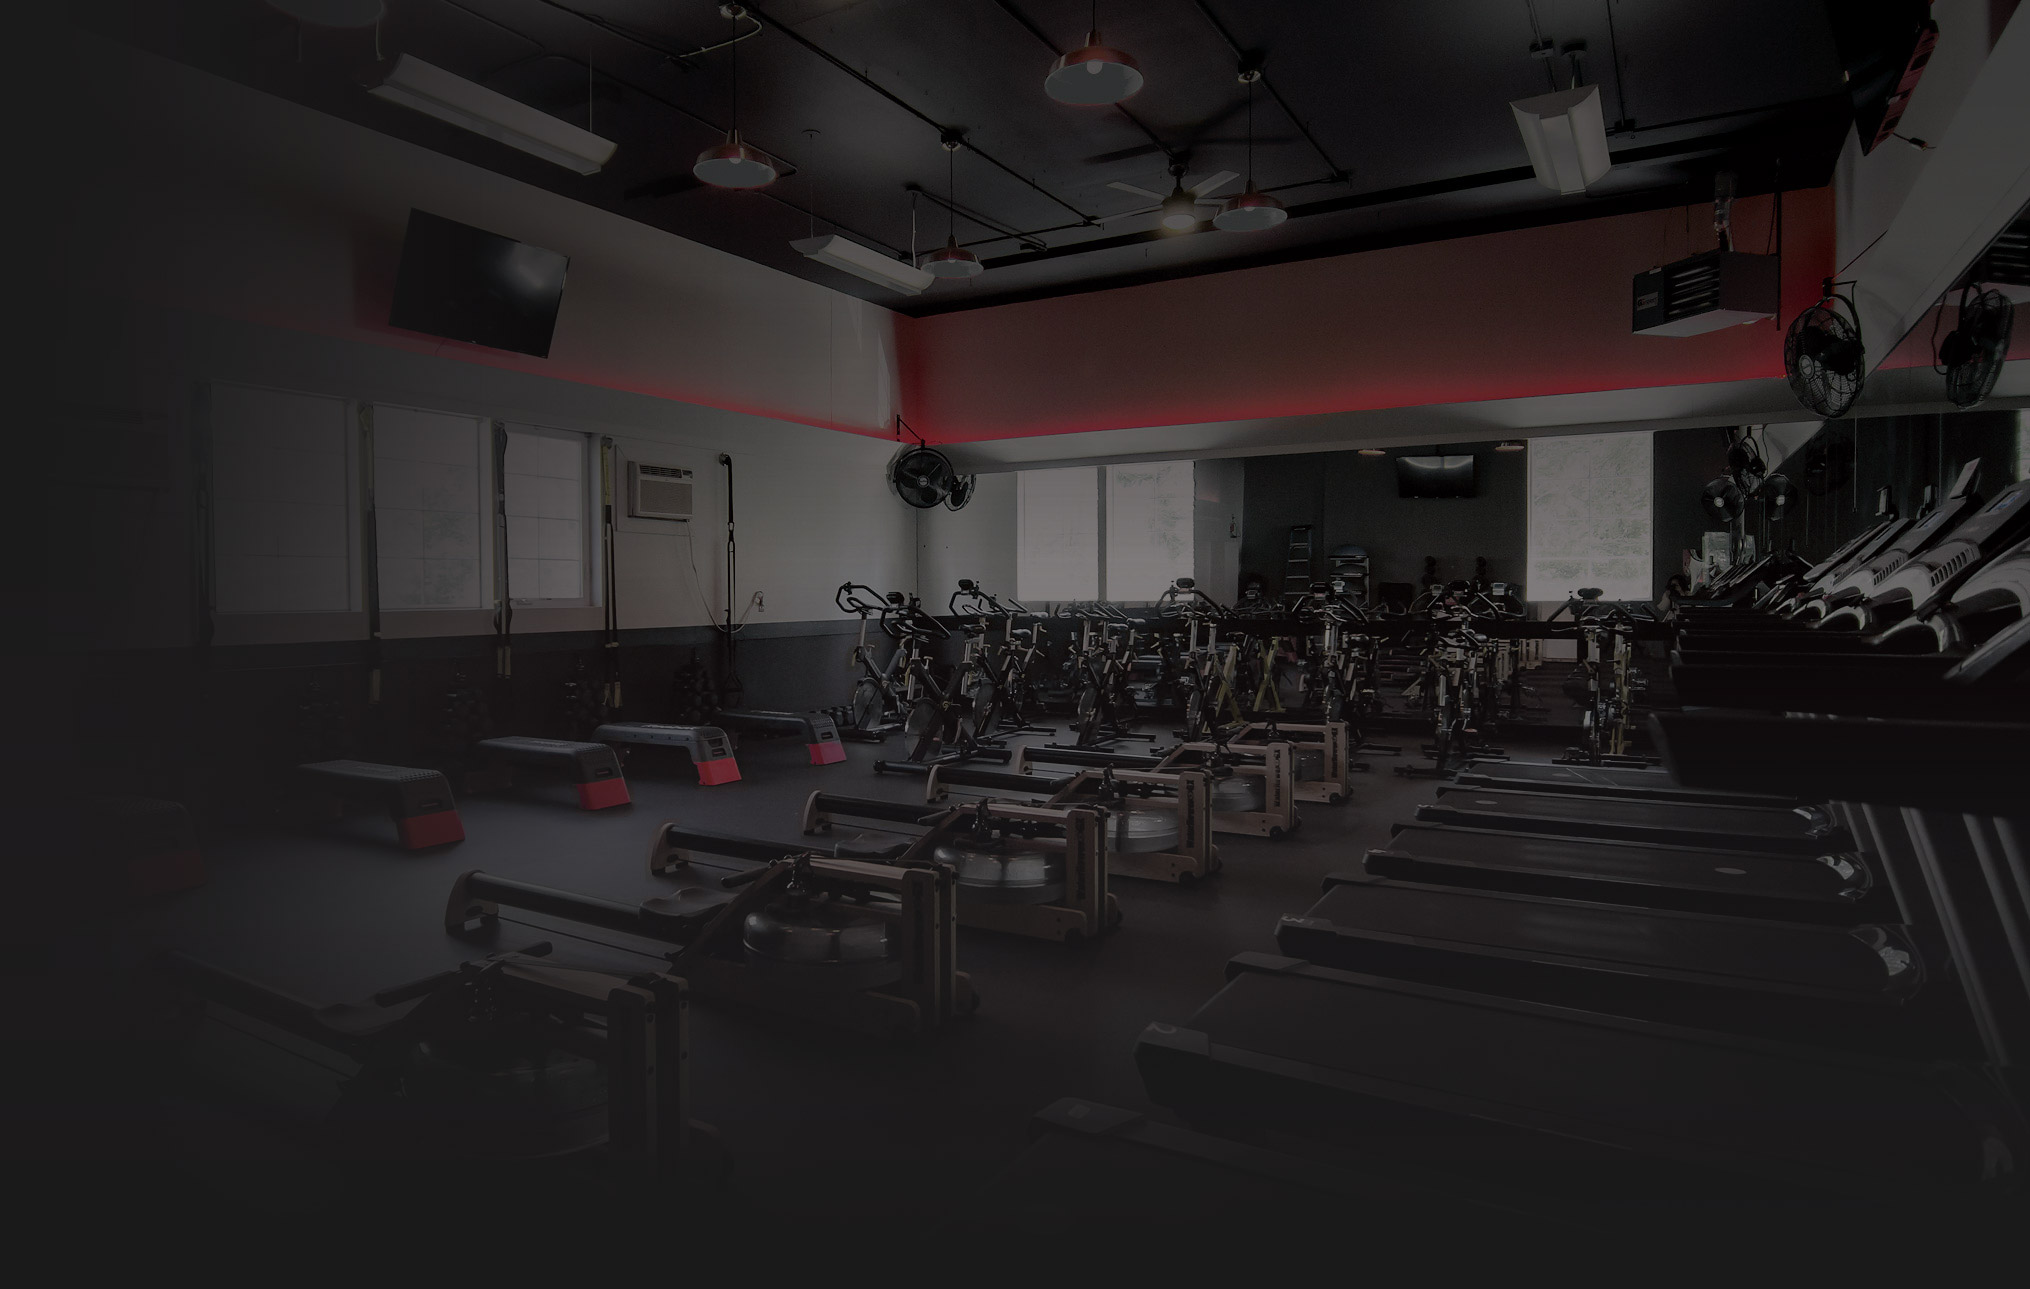 Fit Lab Fitness Studio in Gig Harbor Washington